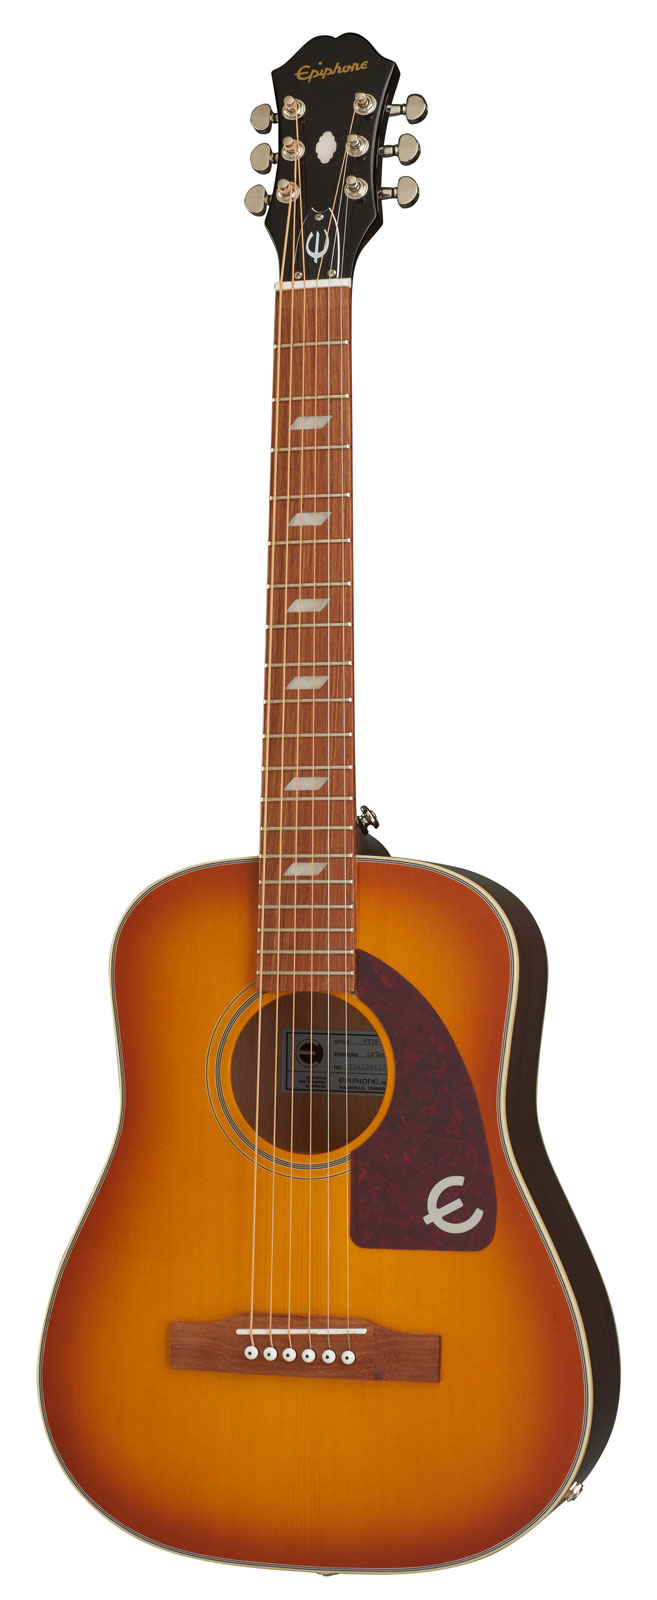 ORIGINALS TRAVEL GUITAR LIL' TEX (ELECTRIC/ACOUSTIC) FADED CHERRY SUNBURST